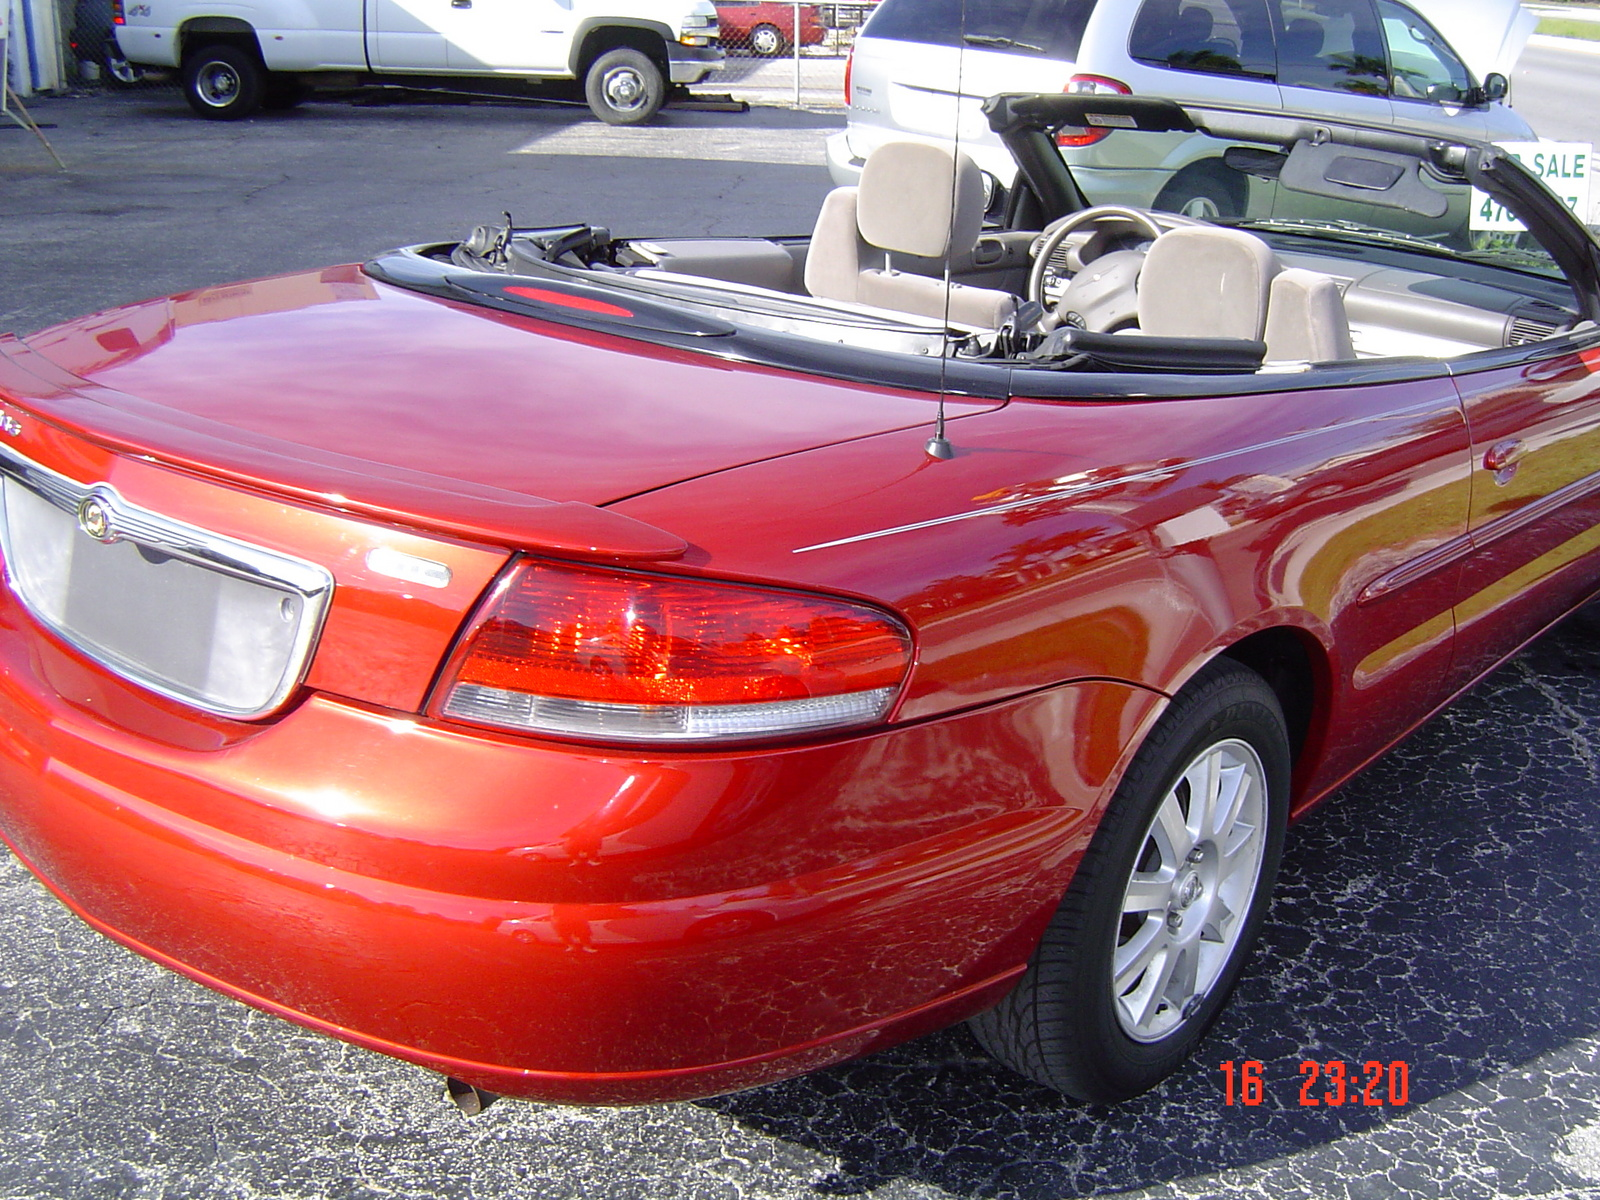 2003 Chrysler Sebring GTC Convertible picture